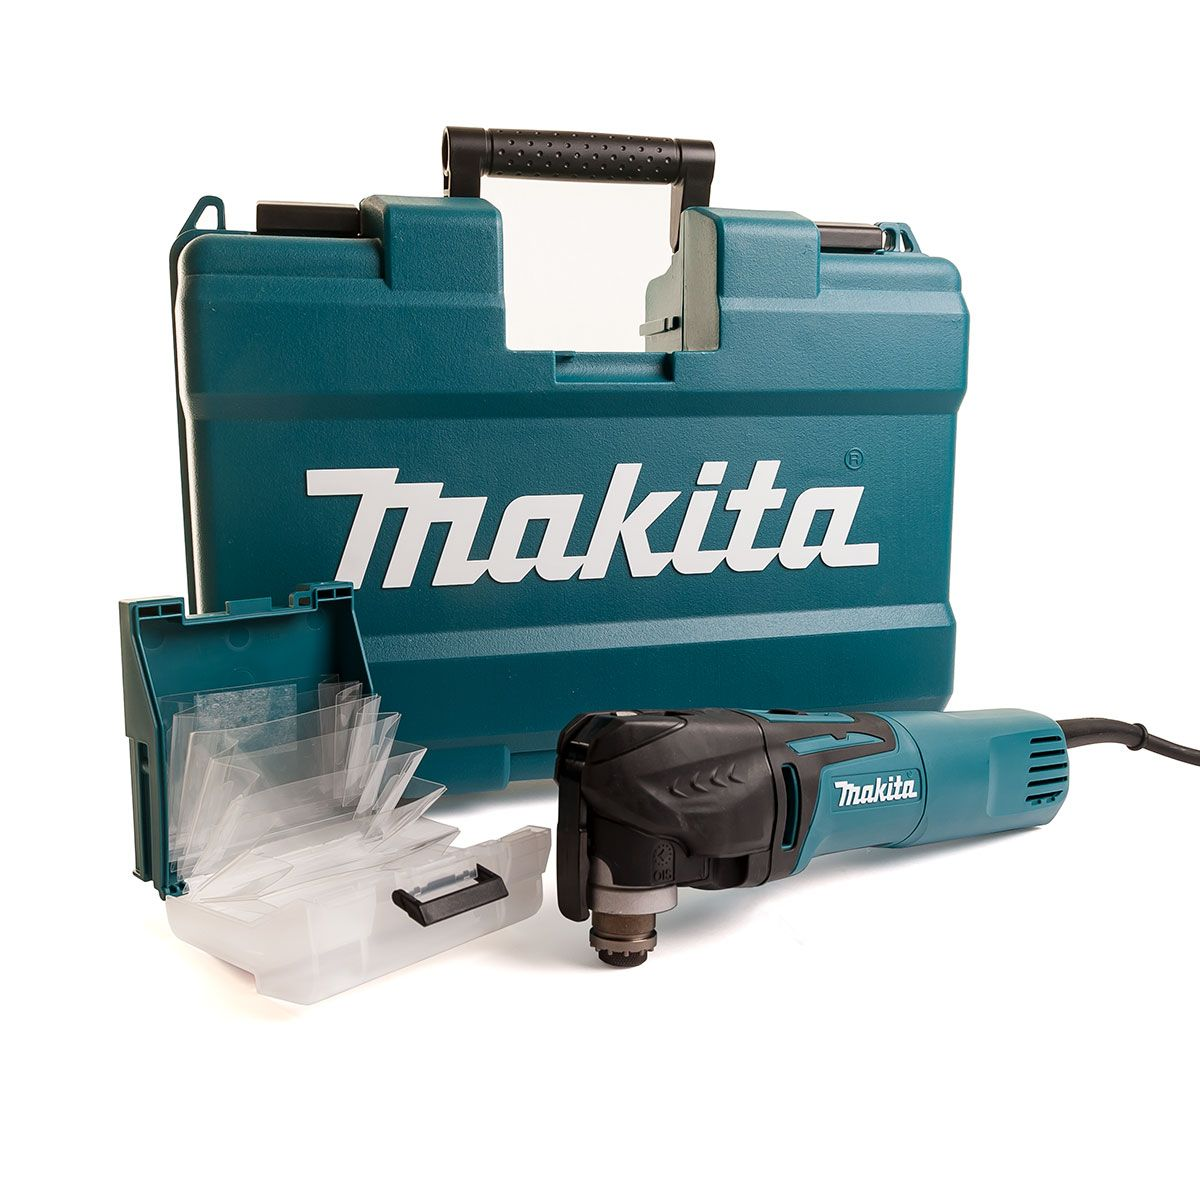 Makita Ois Quick Change Multi Tool In Case 240v MAKTM3010CK | With an oscillating rate of up 20,000 revs per minute the TM3010 will glide through even the toughest cutting jobs with ease. | toolforce.ie